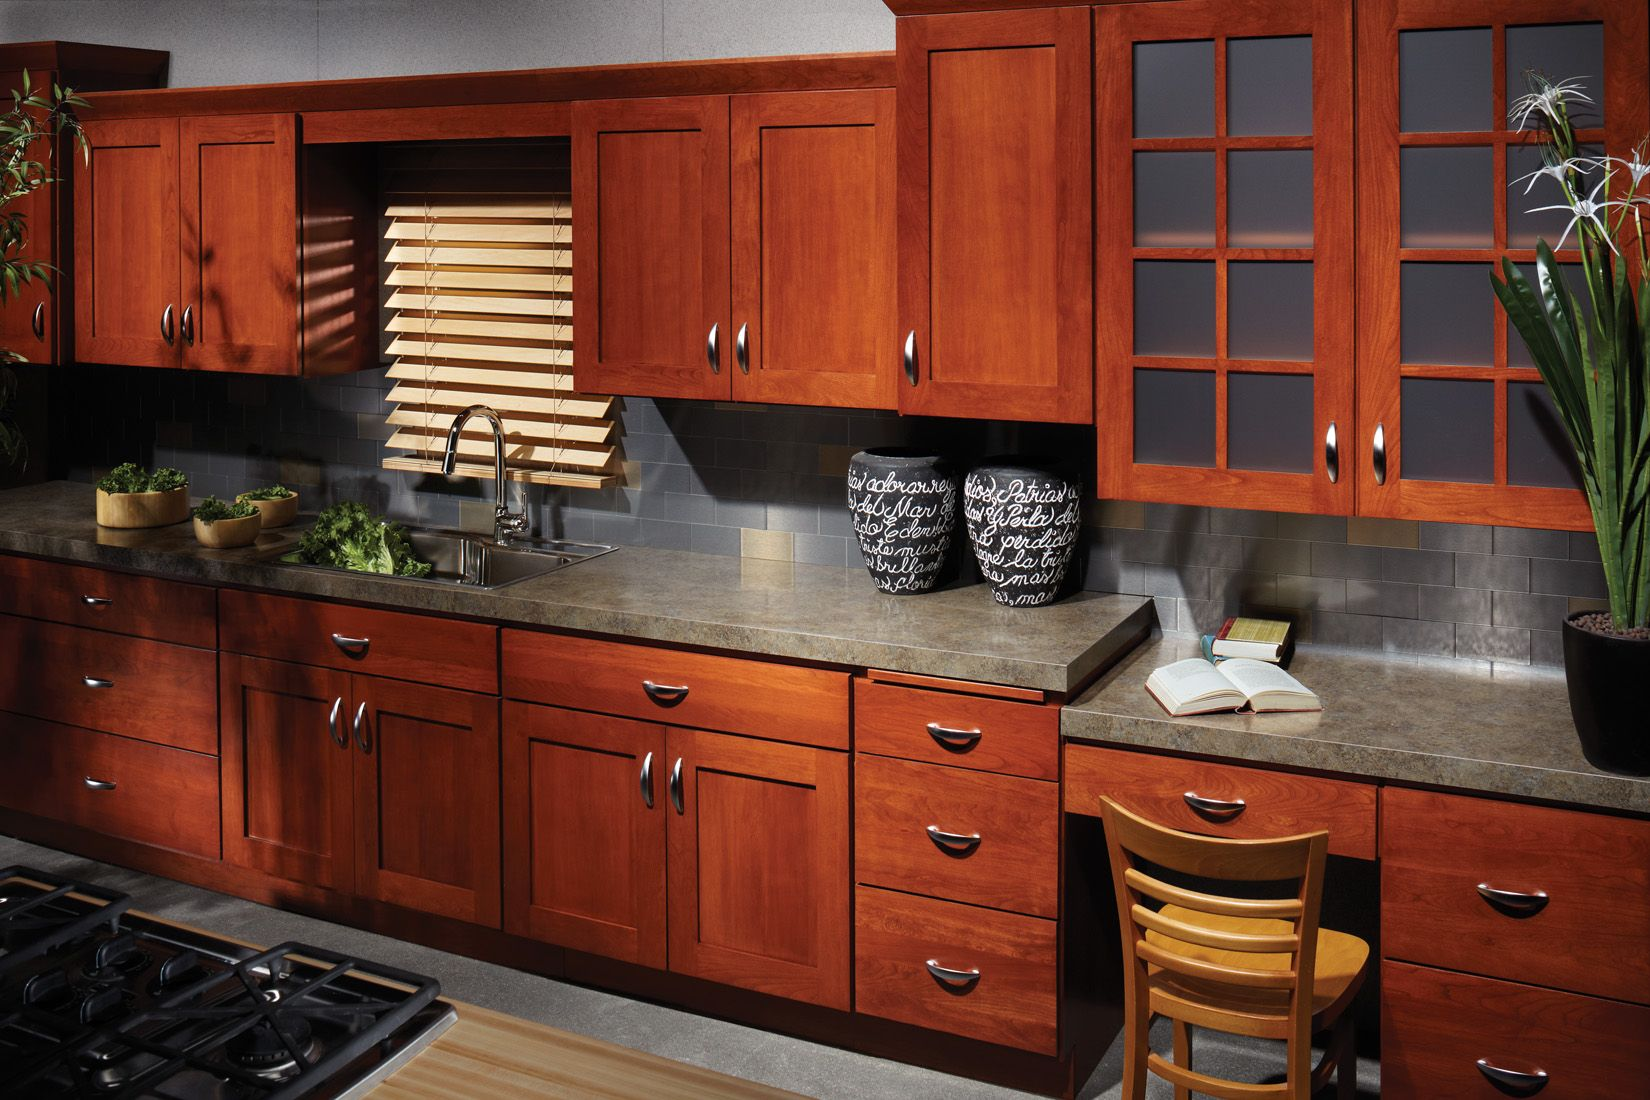 Quincy 3 Cherry Chestnut Bertch Kitchen Cabinetry By All Star